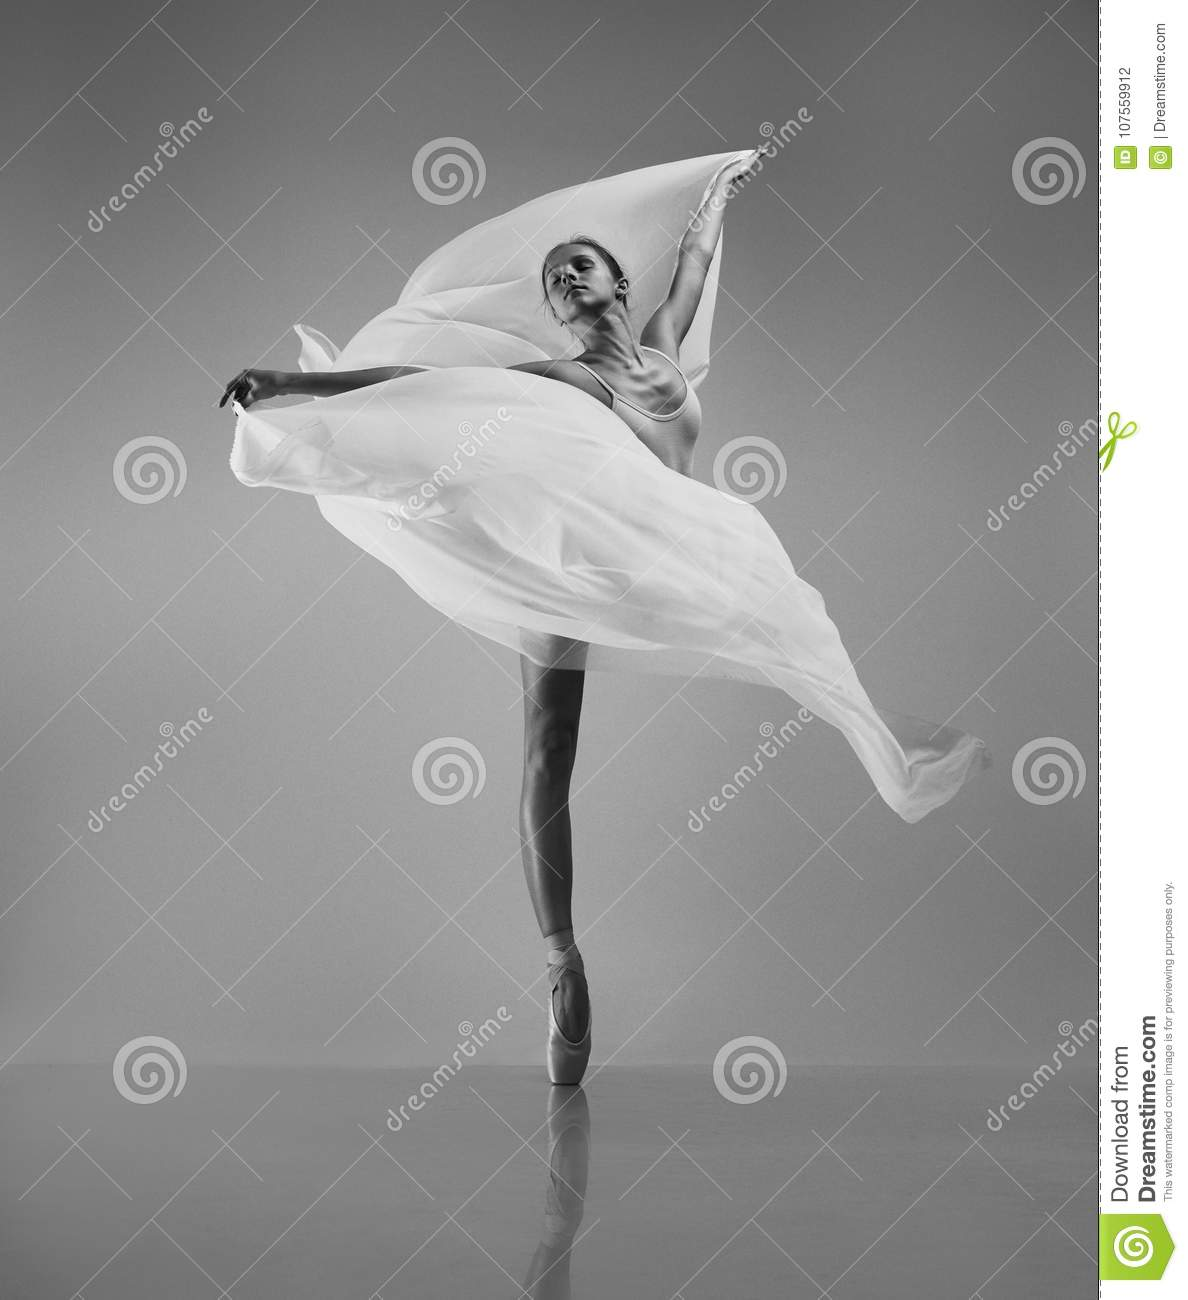 Ballerina with flying cloth